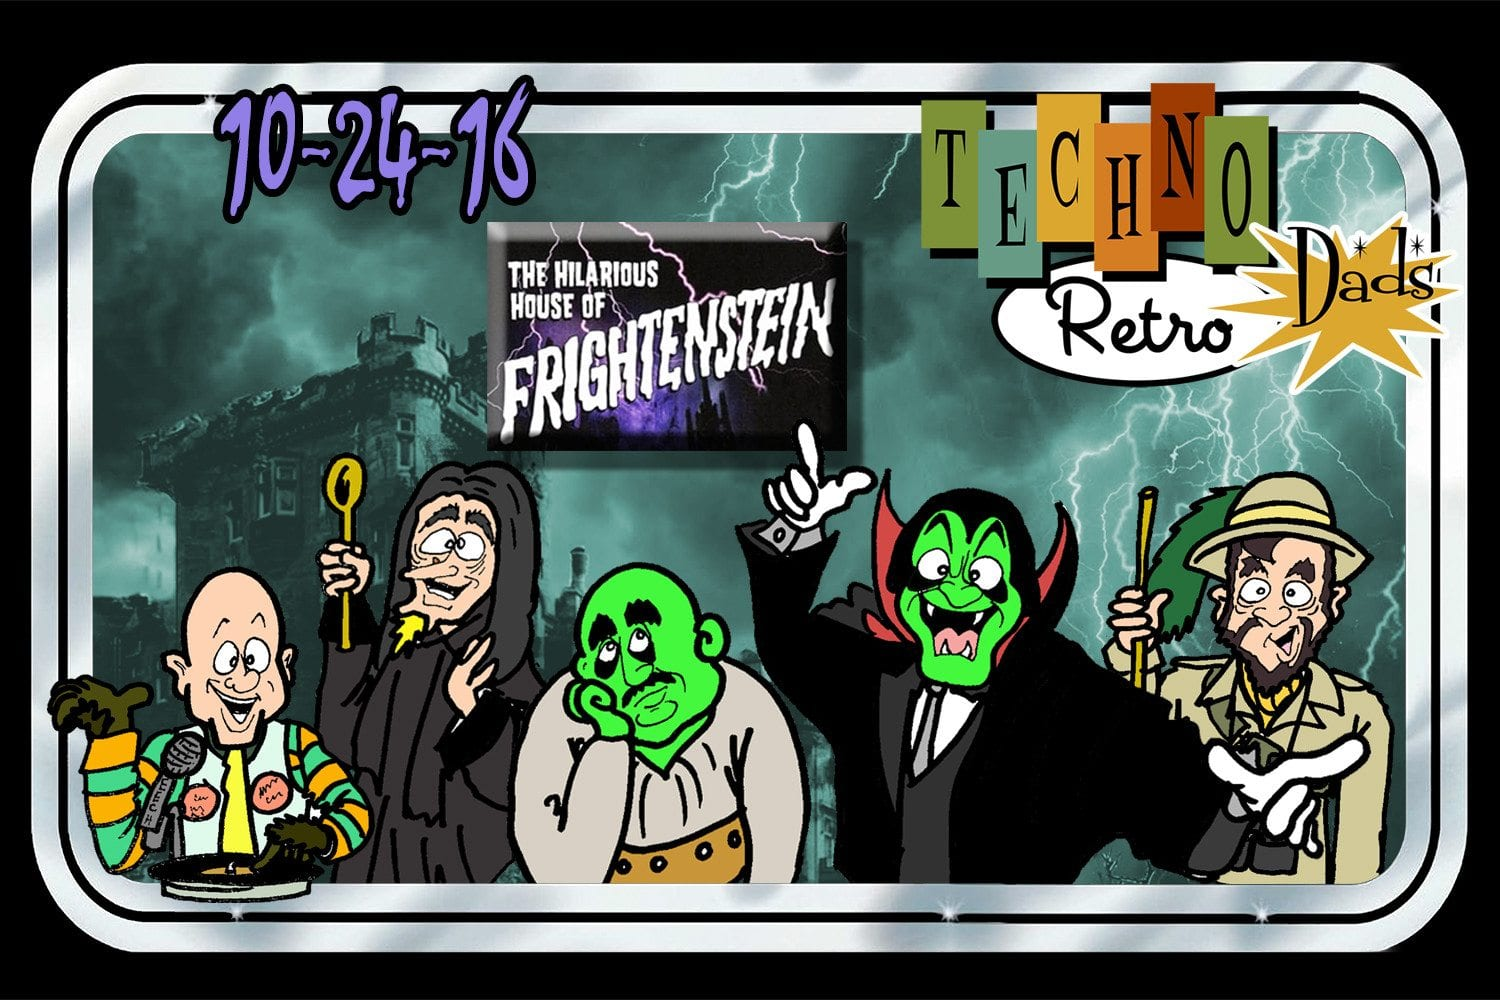 The Hilarious House of Frightenstein on TechnoRetro Dads